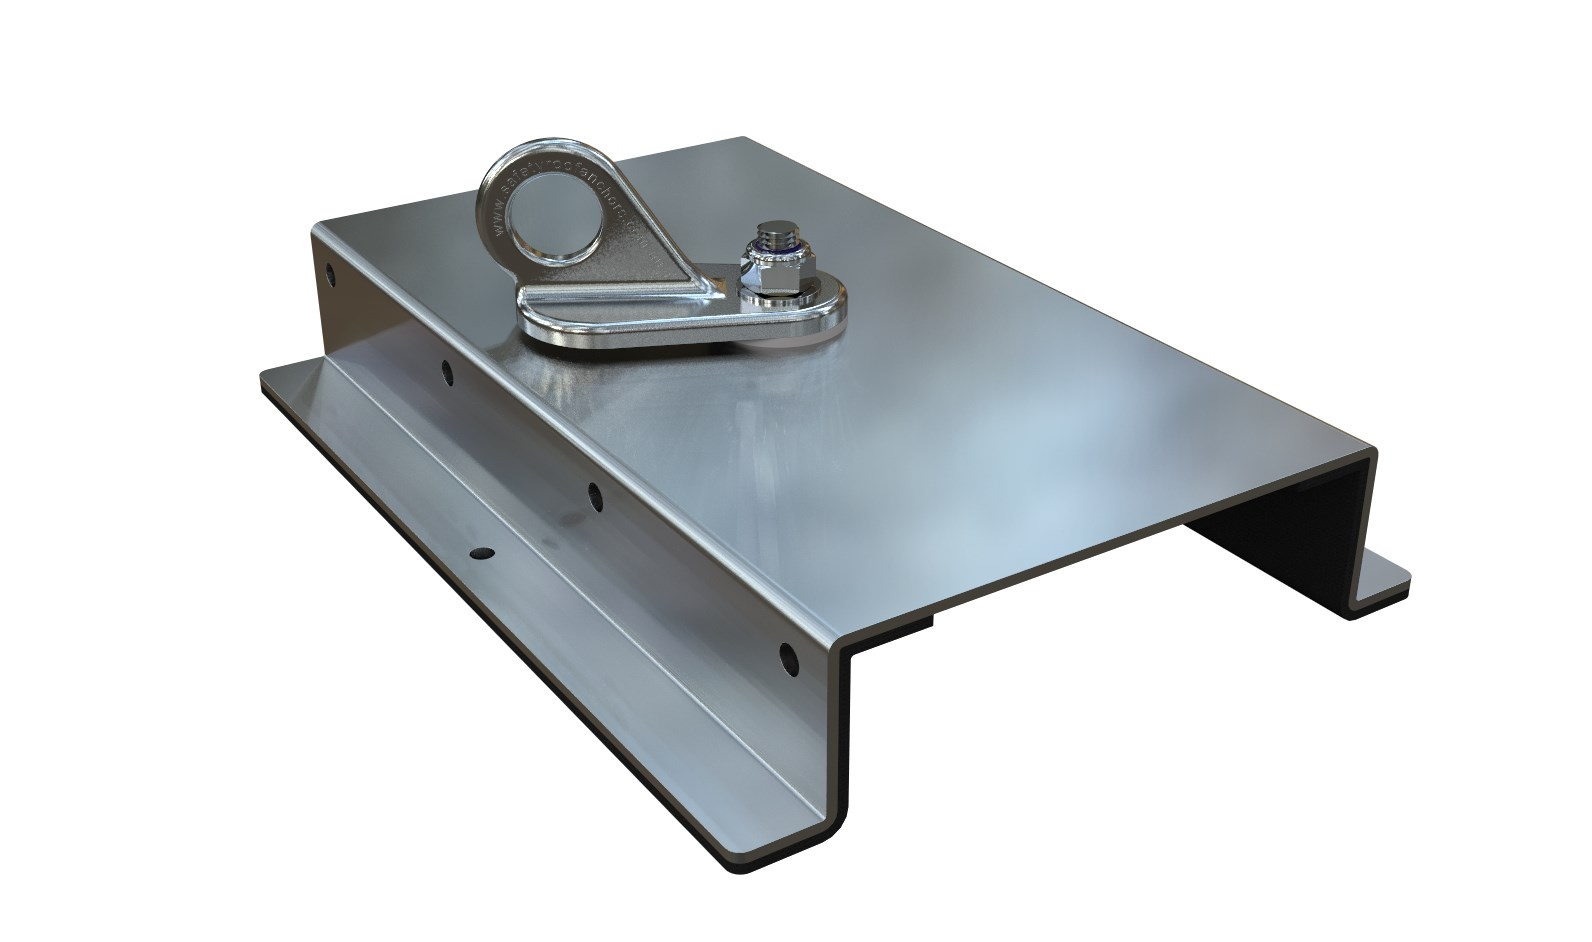 Surface mount & purlin anchors for steel roofs - Safety Roof Anchors